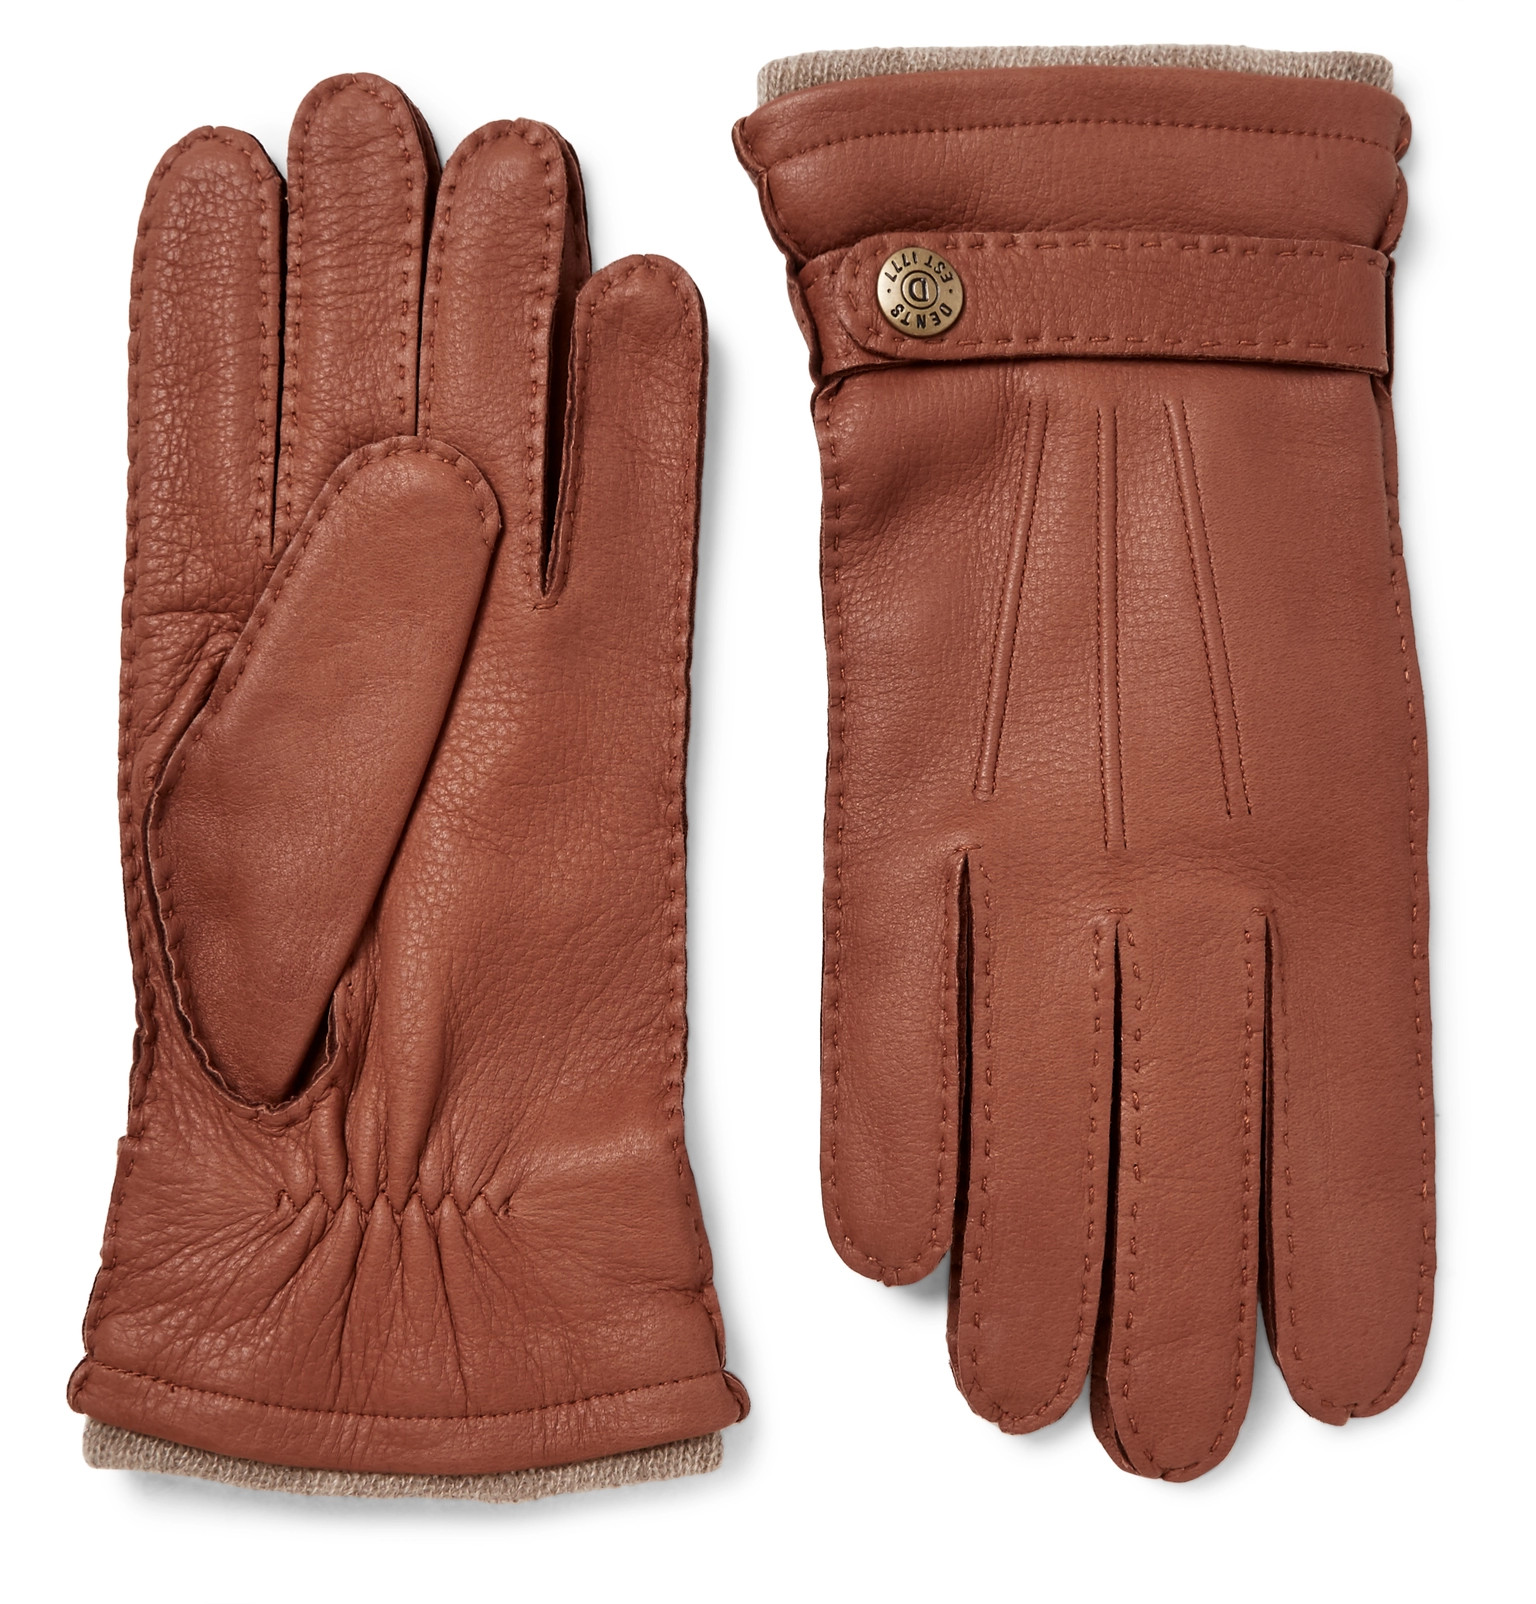 Mens leather gloves black friday - Dents Gloucester Cashmere Lined Full Grain Leather Gloves